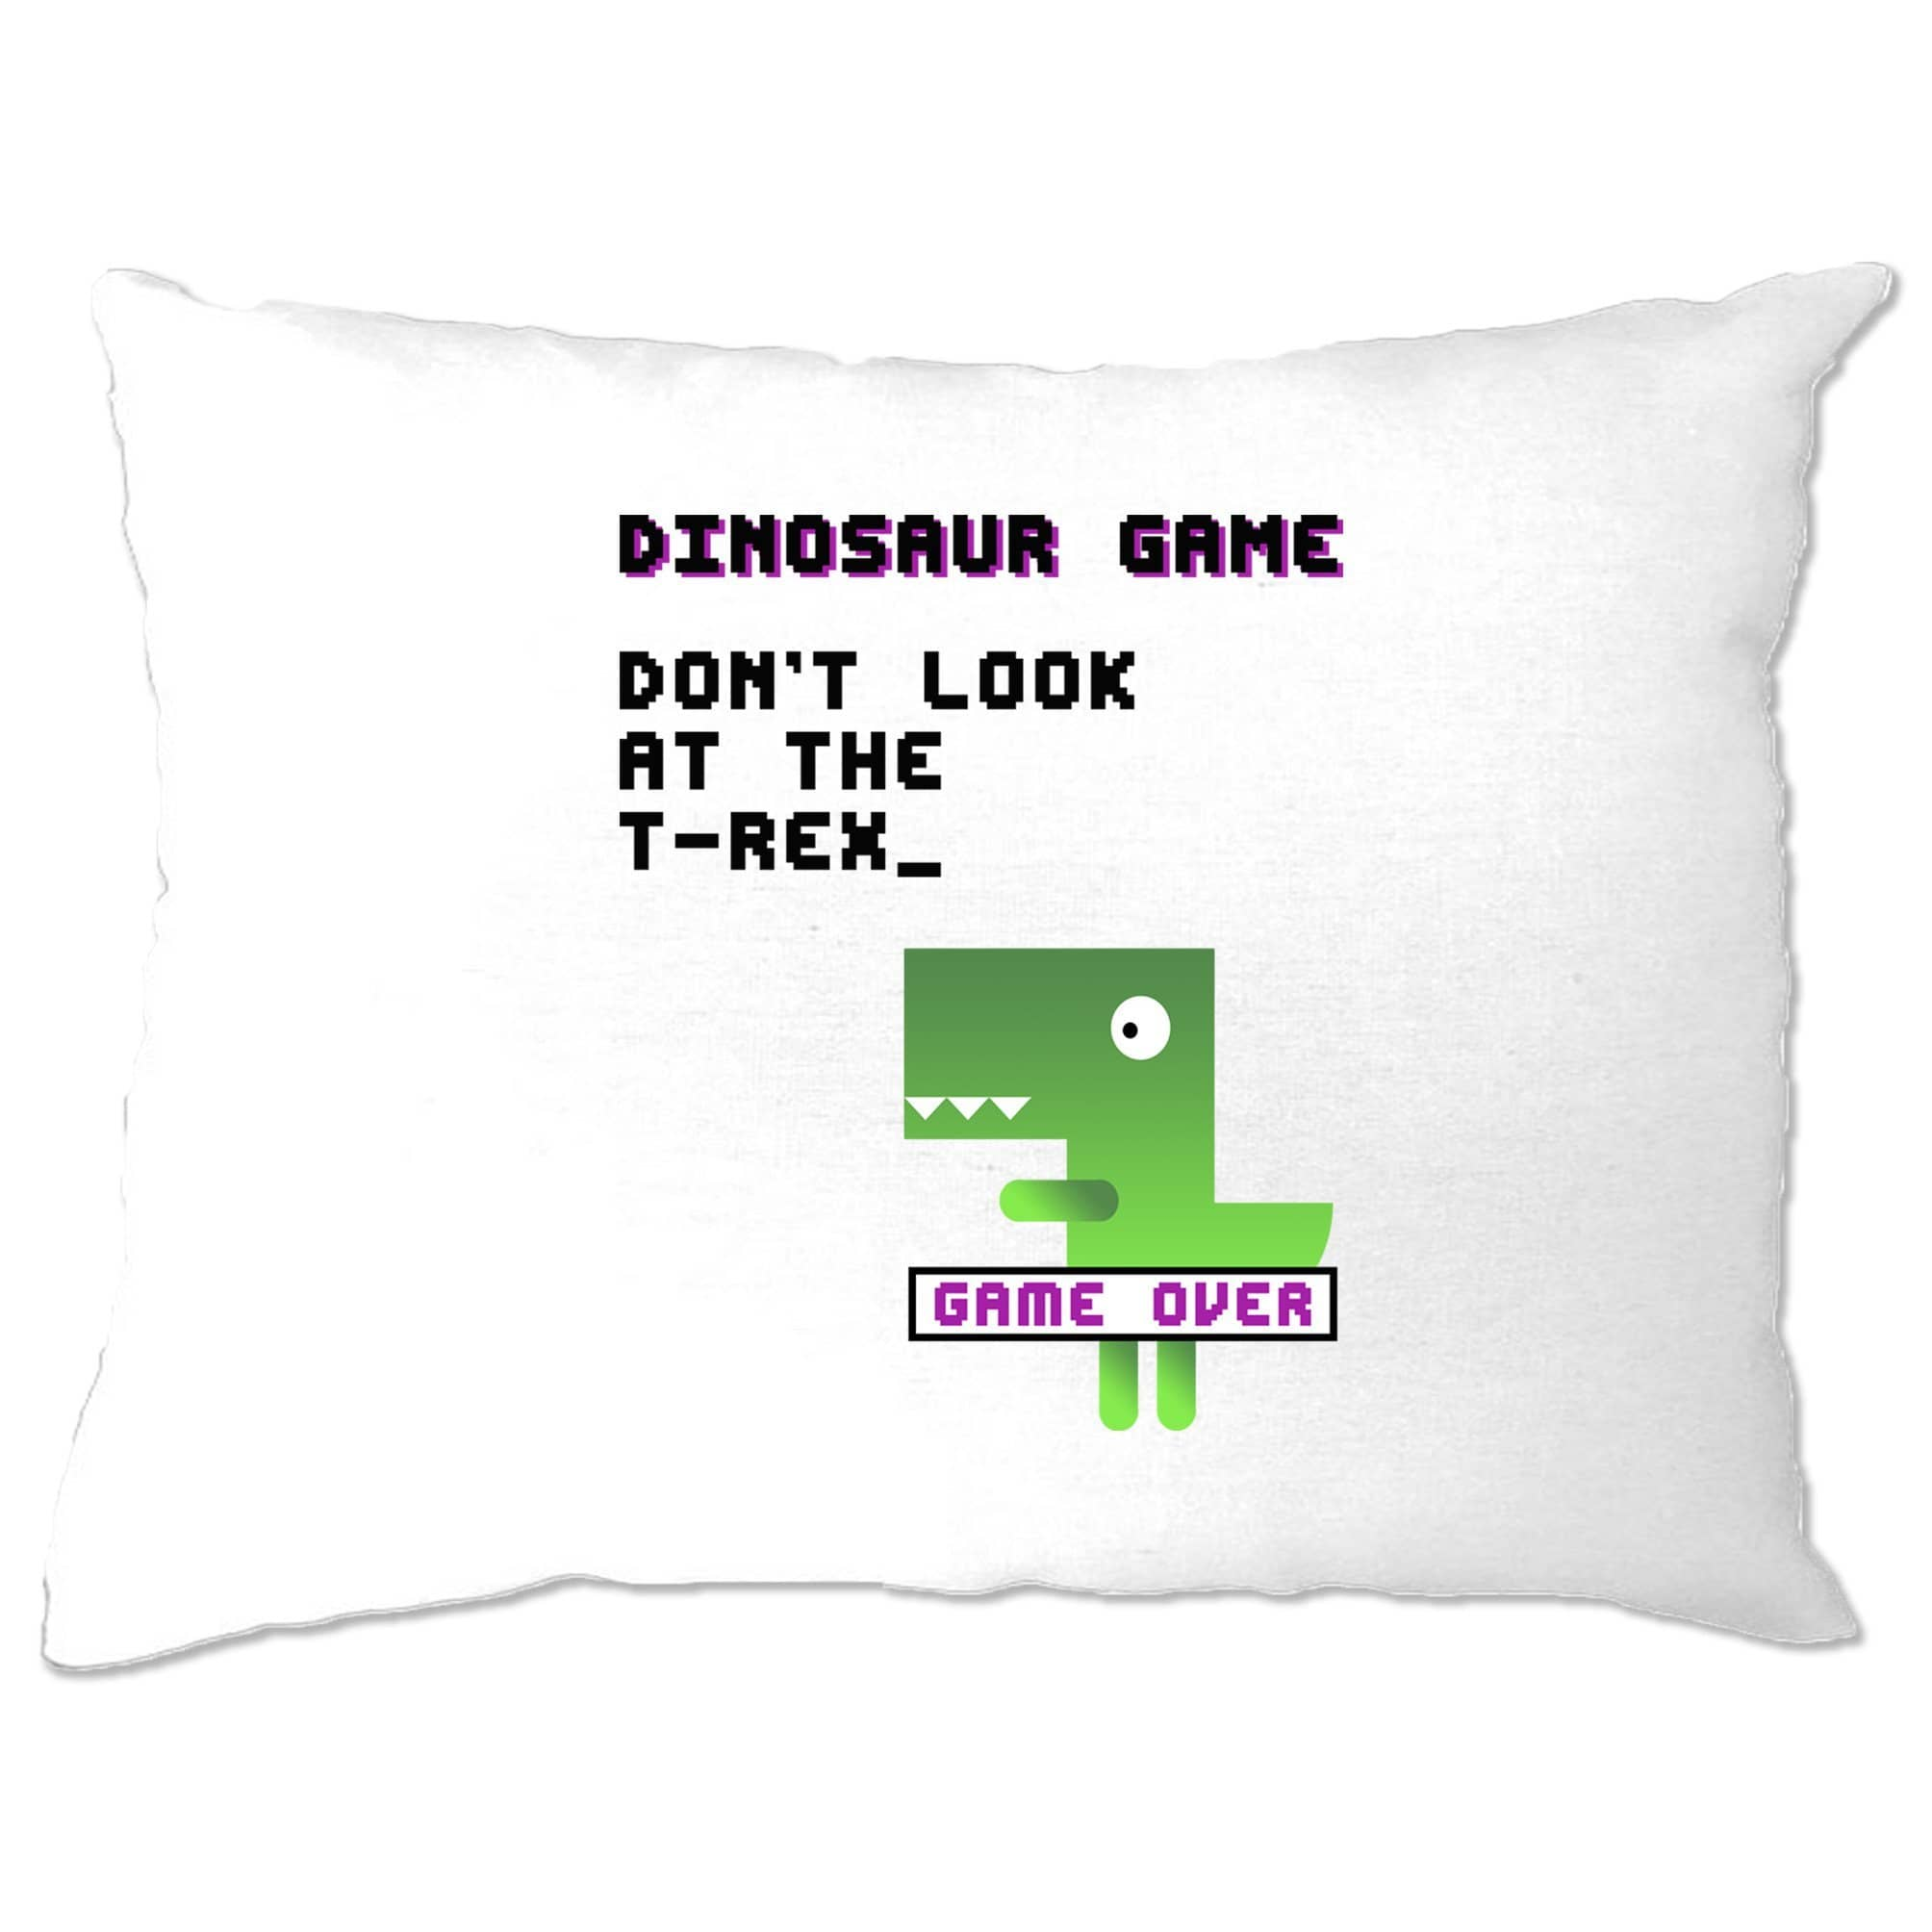 Novelty Pillow Case Don't Look At The T-Rex Game Joke